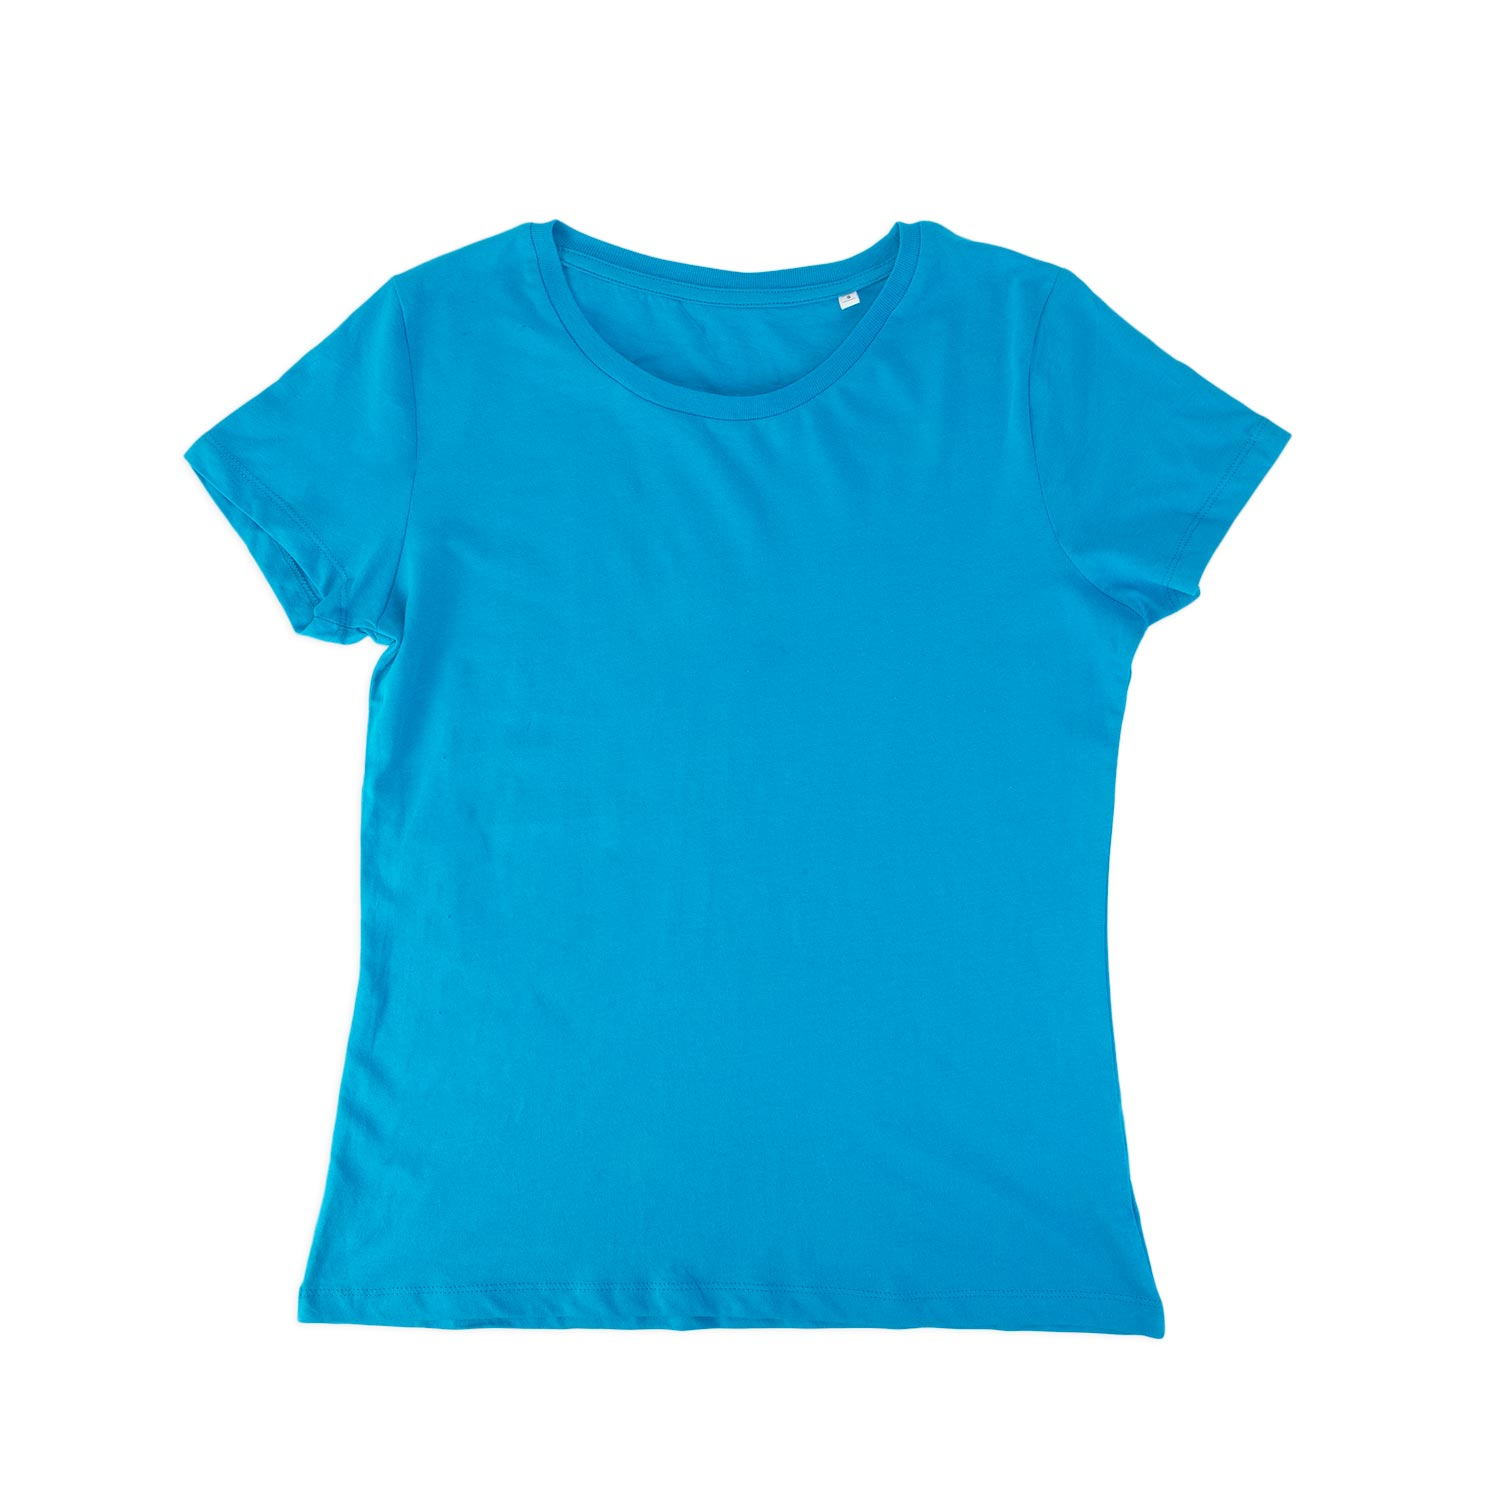 B&C Inspire Plus Ladies' Organic Crew Neck T-Shirts